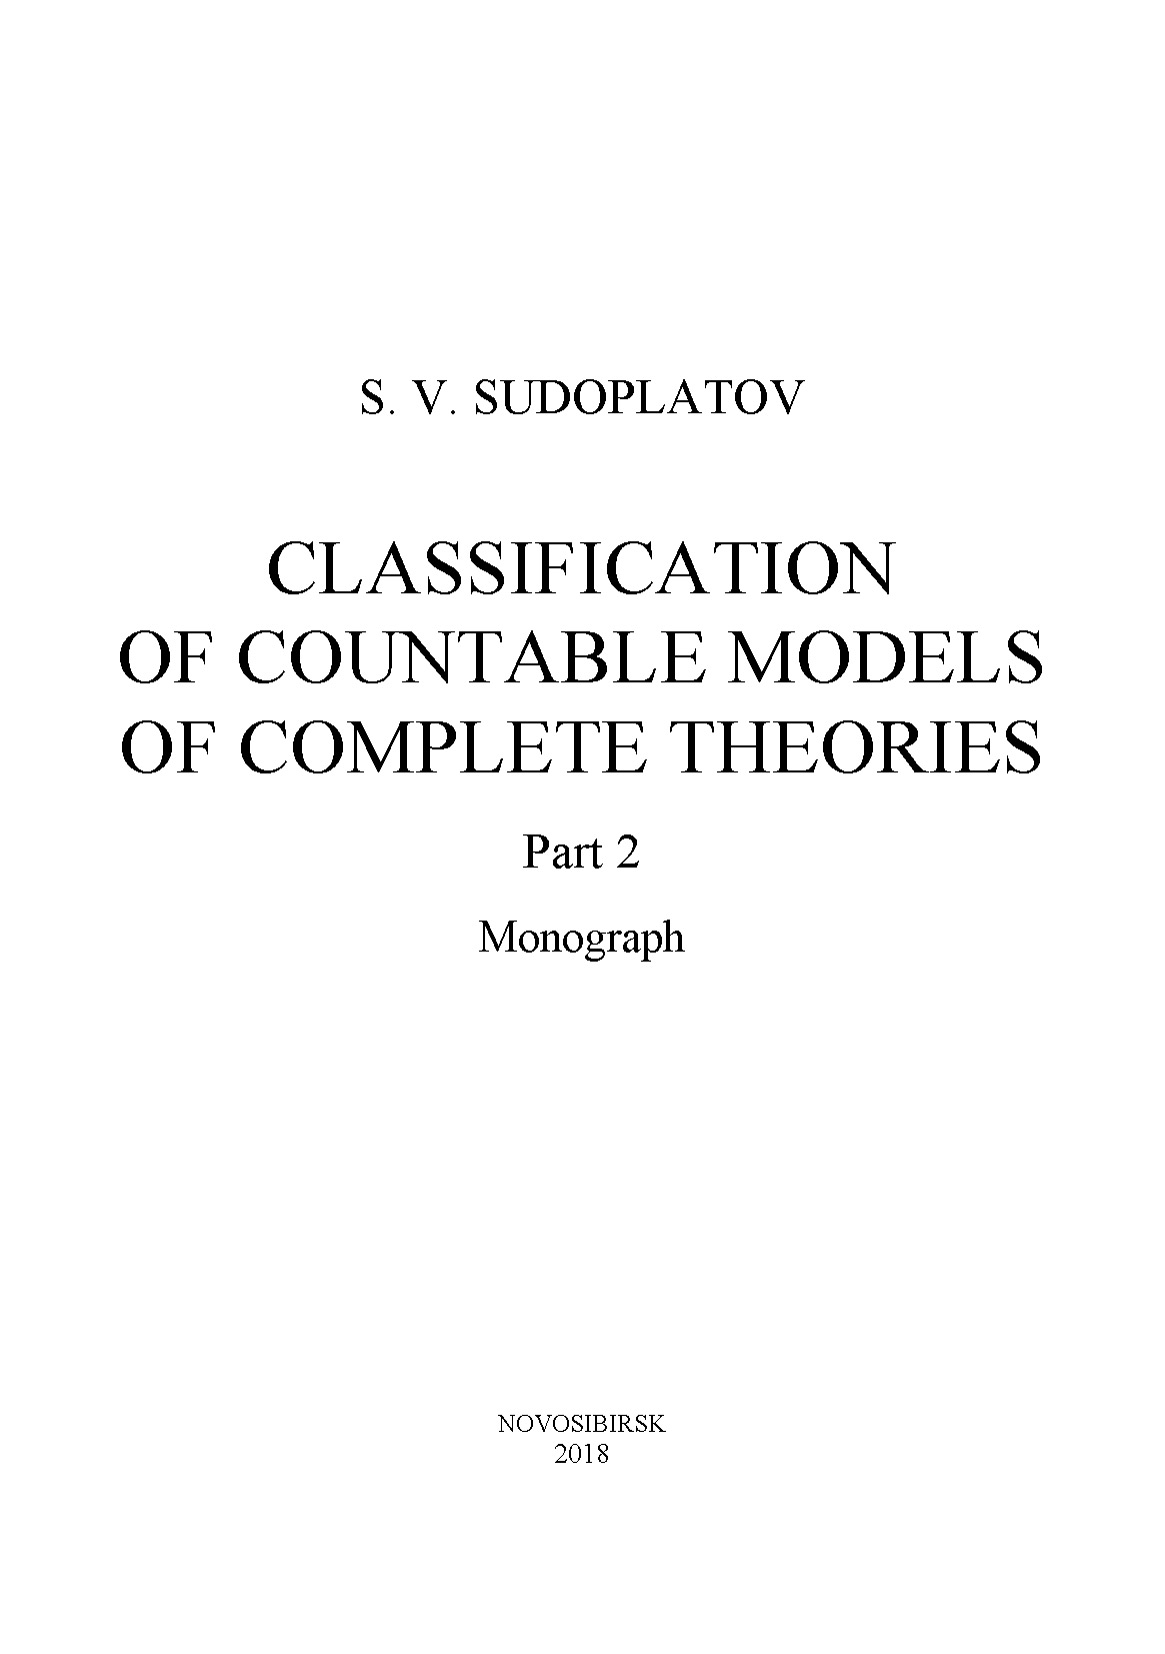 лучшая цена Sergey Sudoplatov Classification of countable models of complete theories. Рart 2